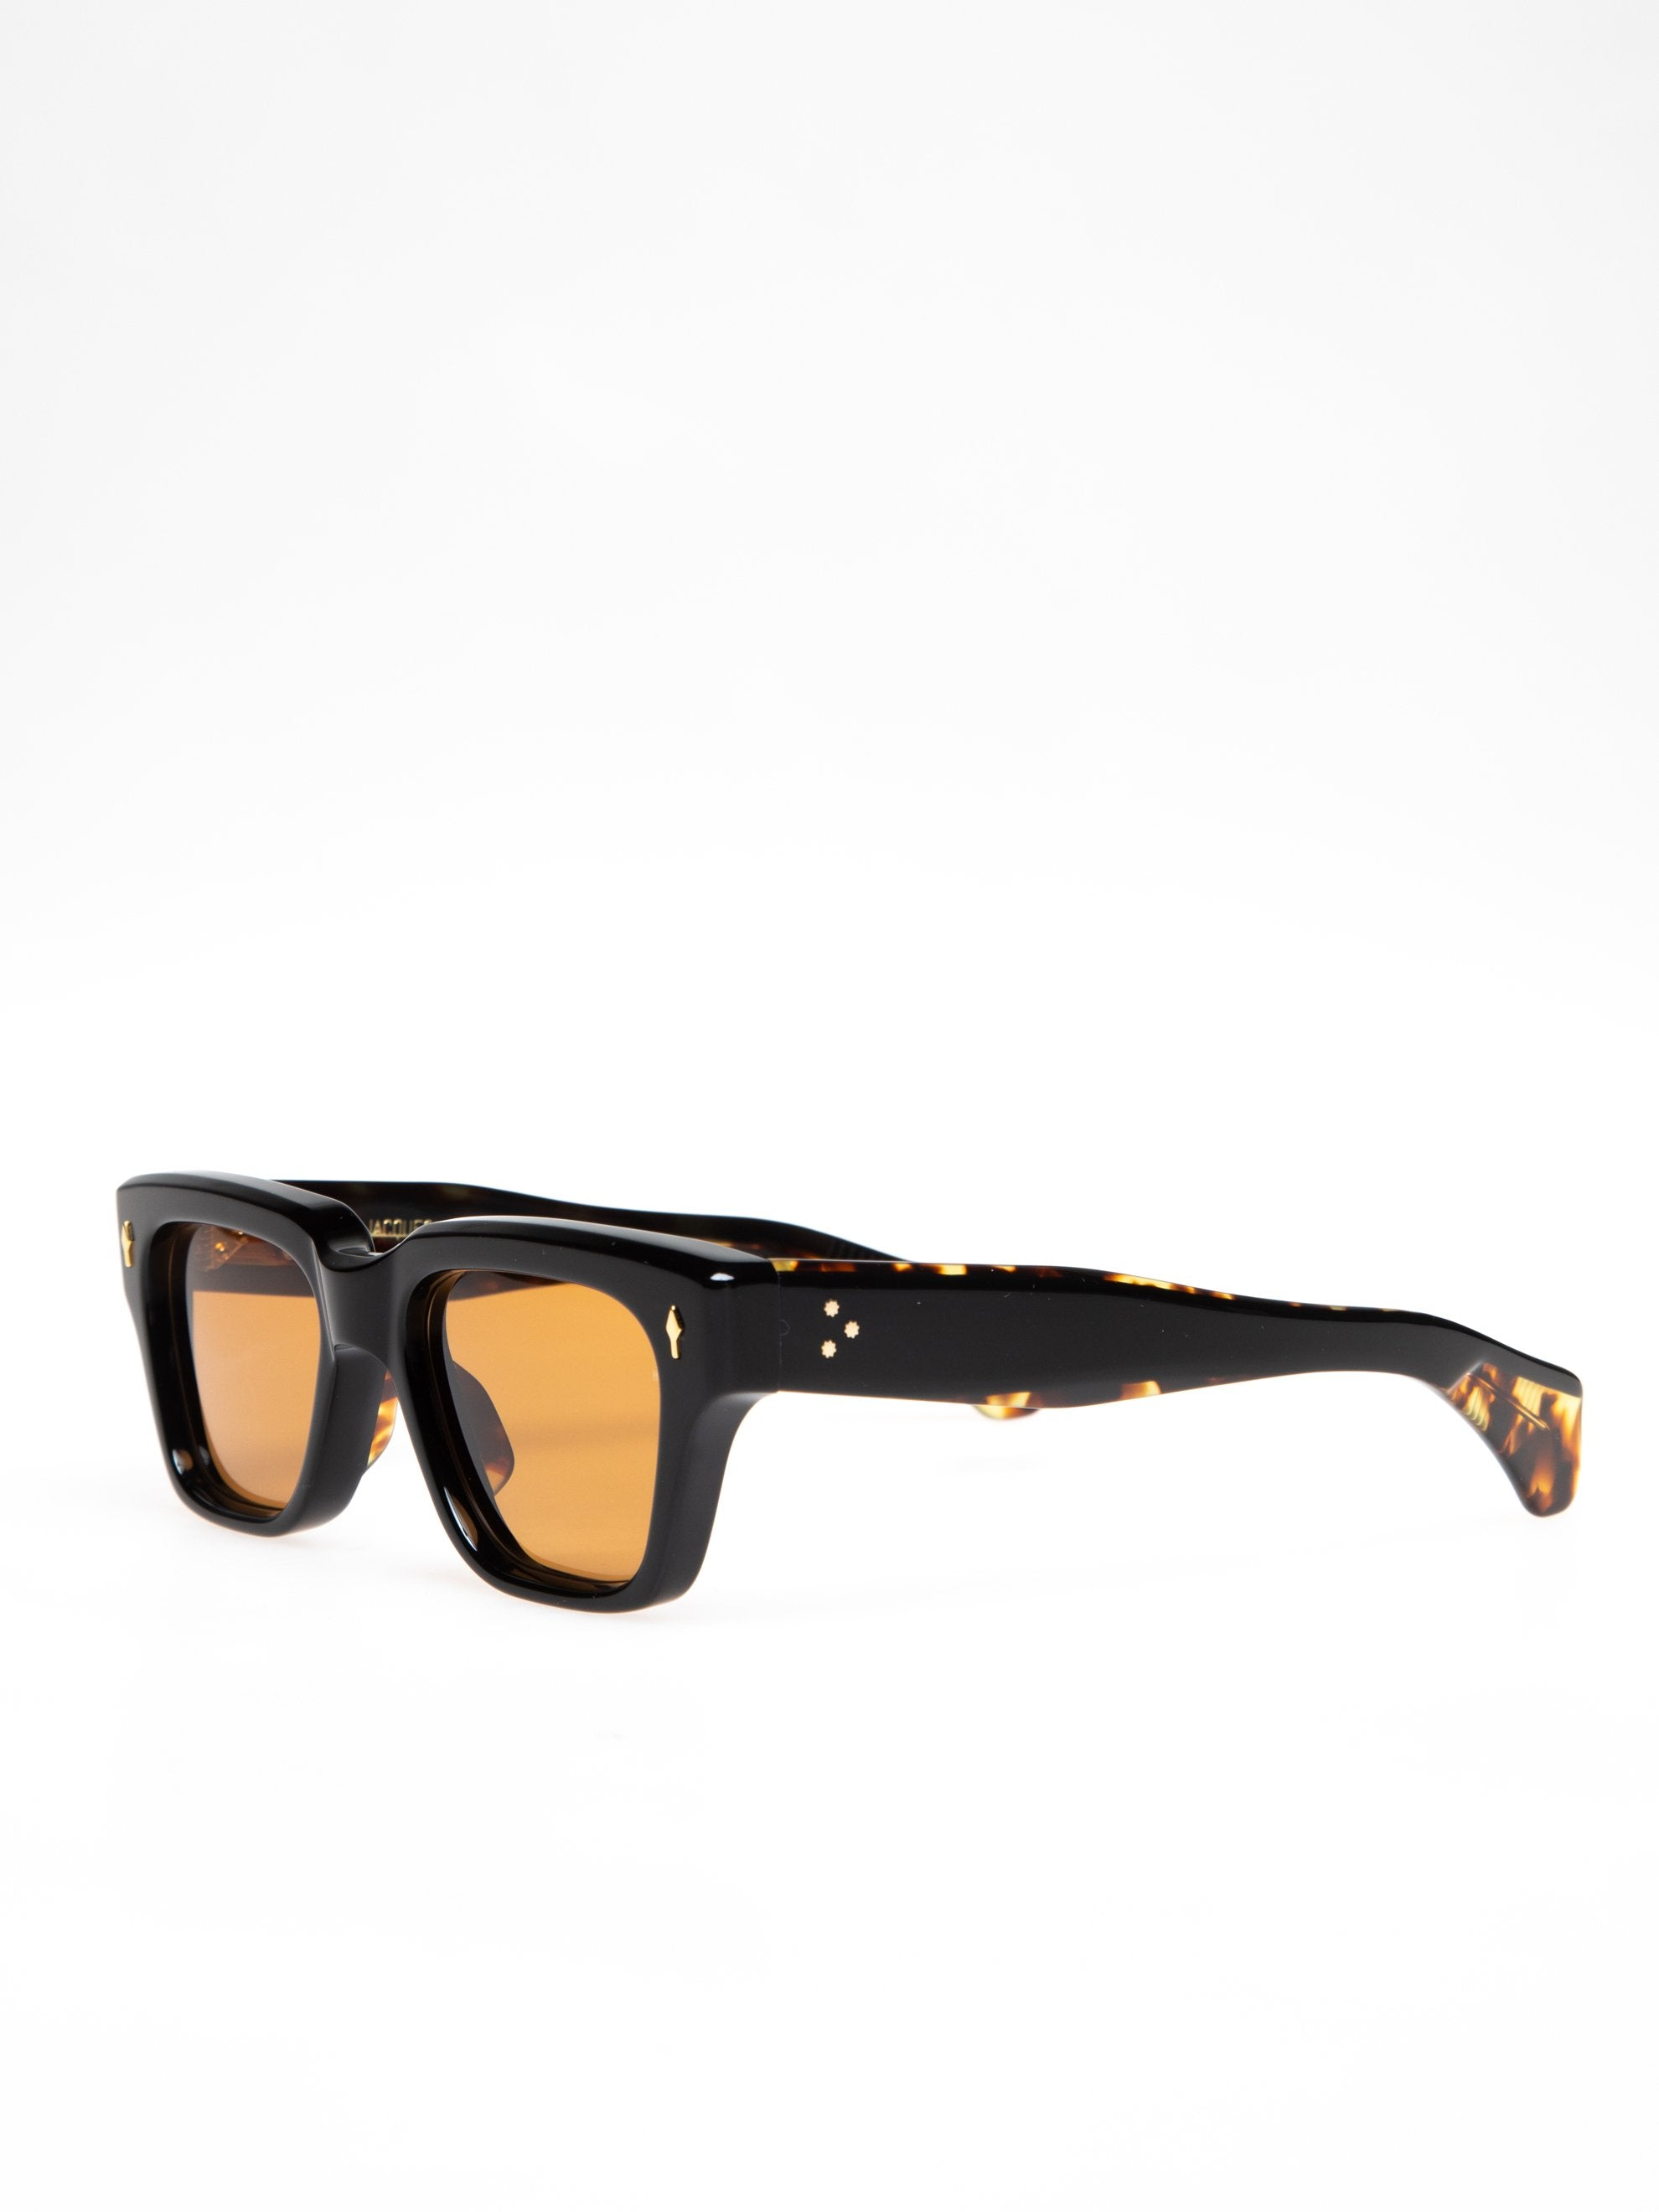 Orange CR39/ 18k Dark Gold Fellini Noir 2